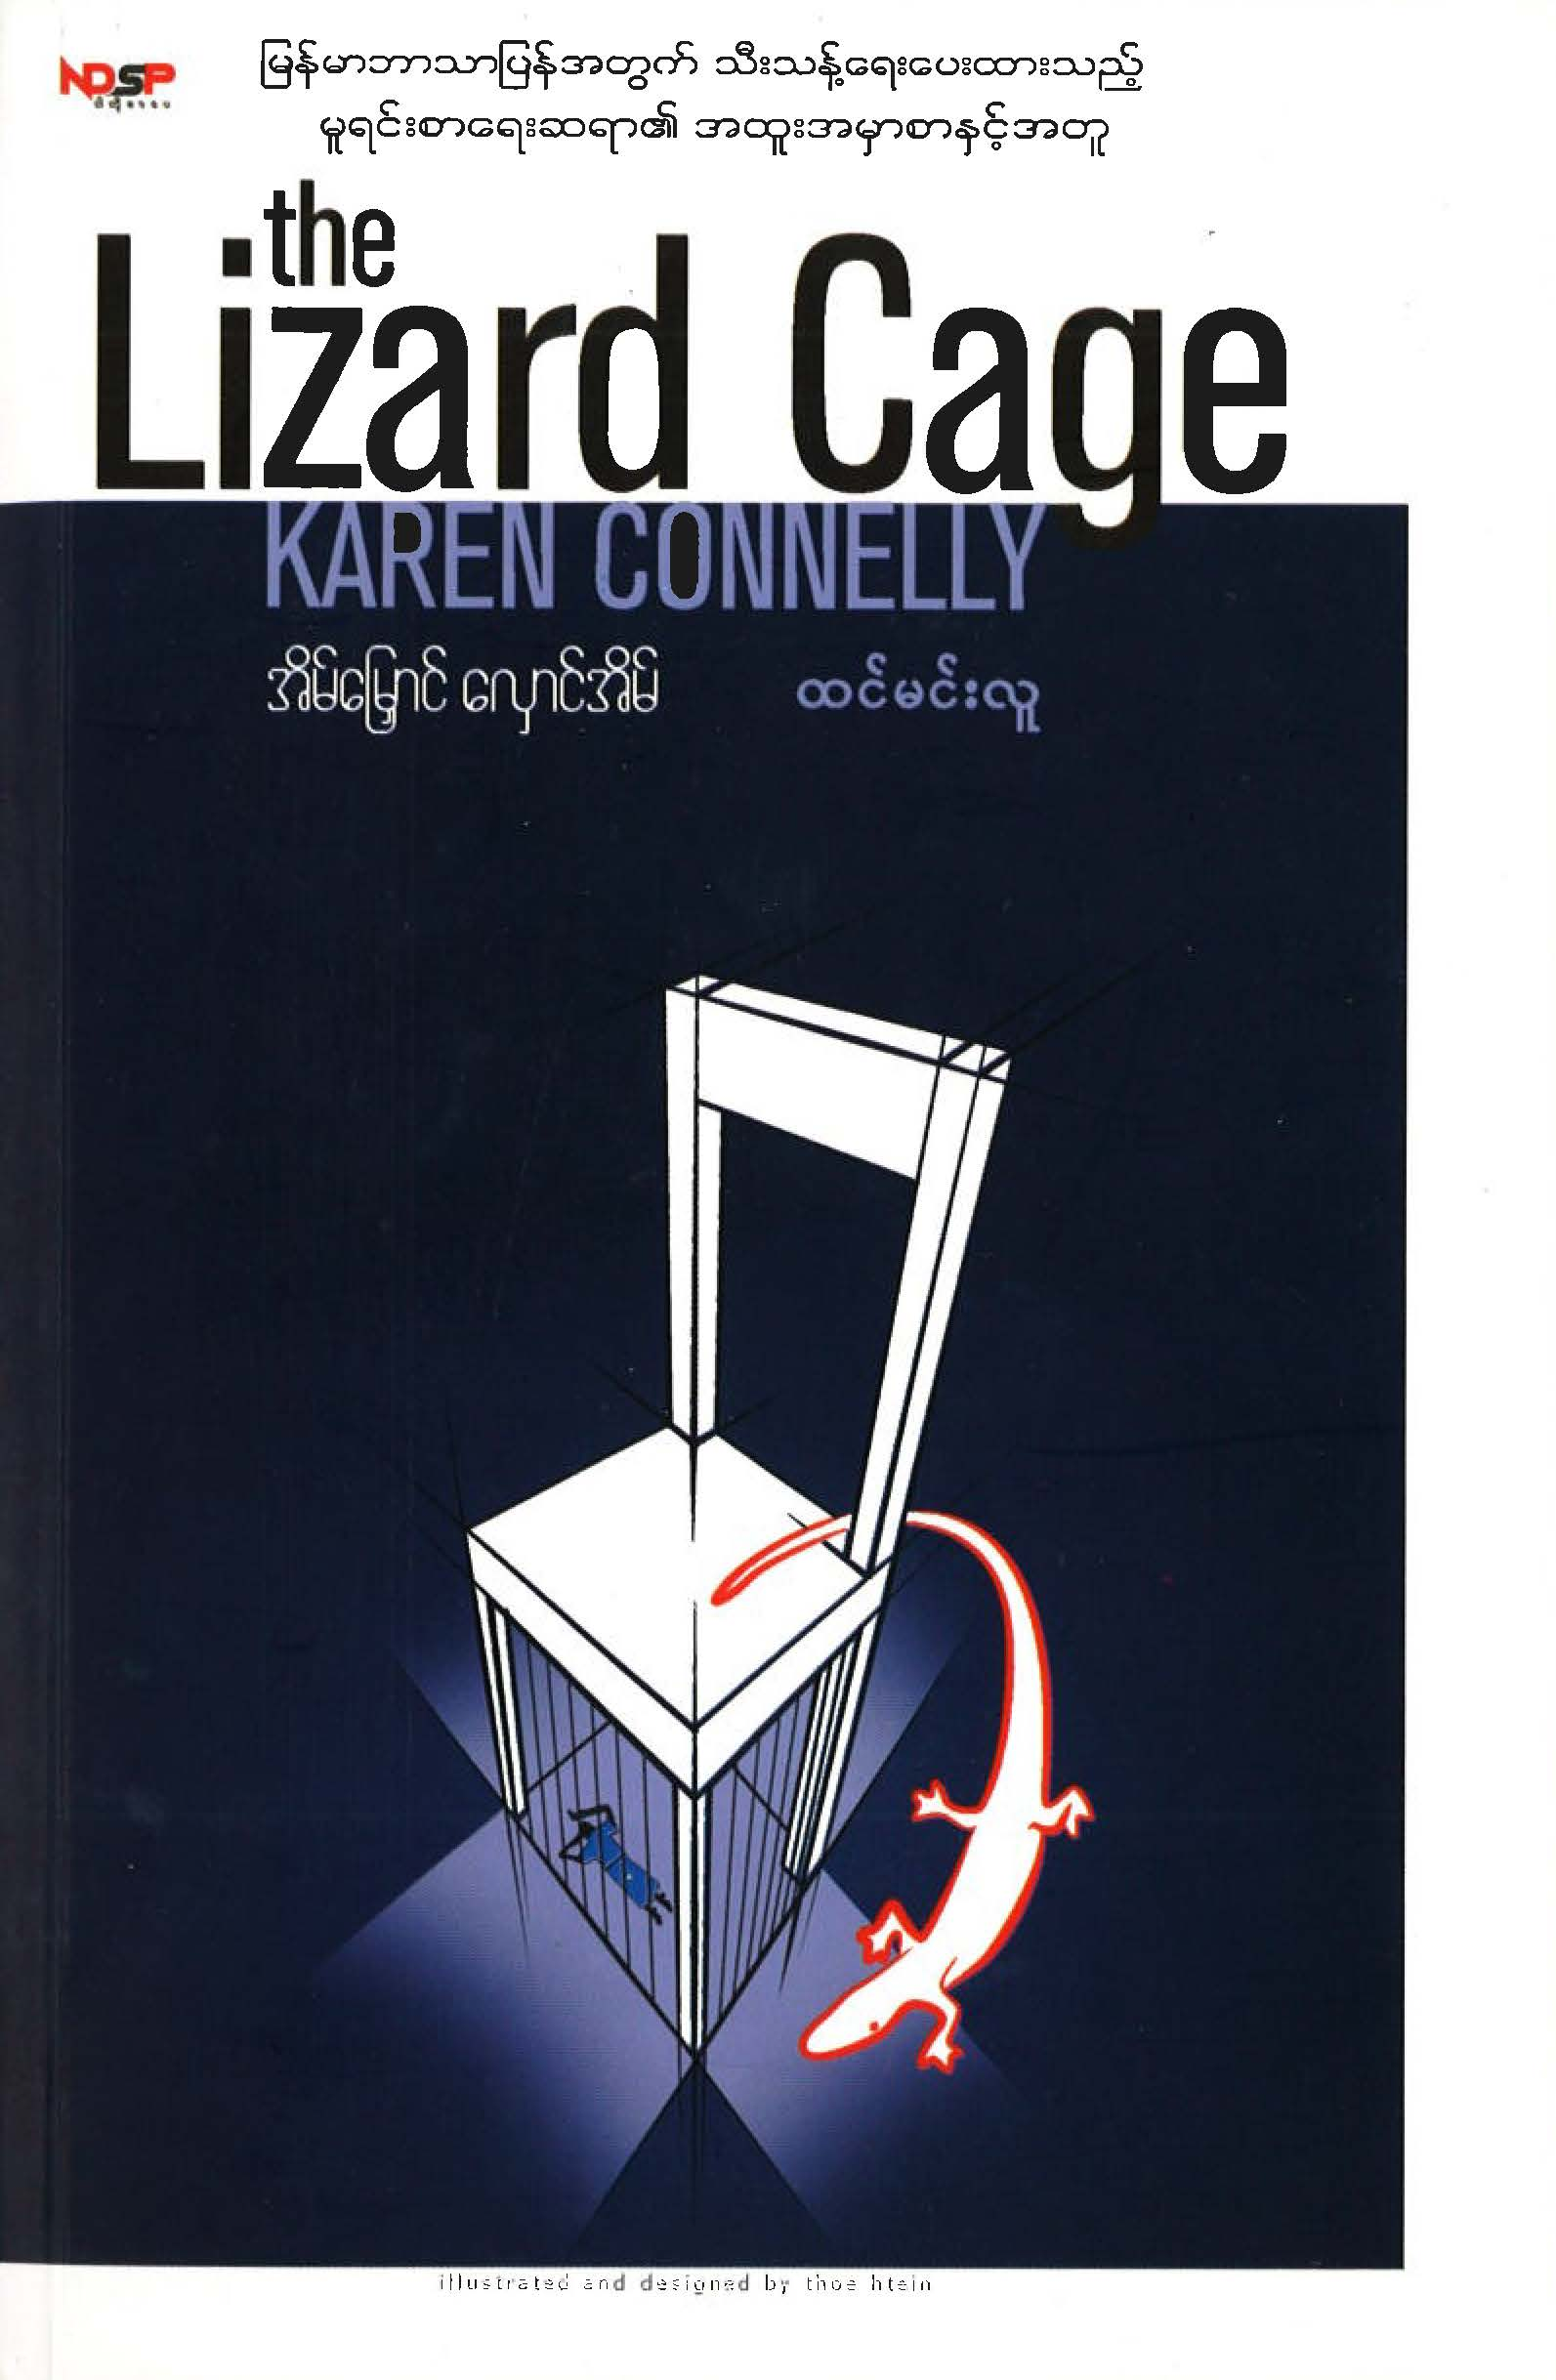 The Lizard cage Burma Cover.jpg